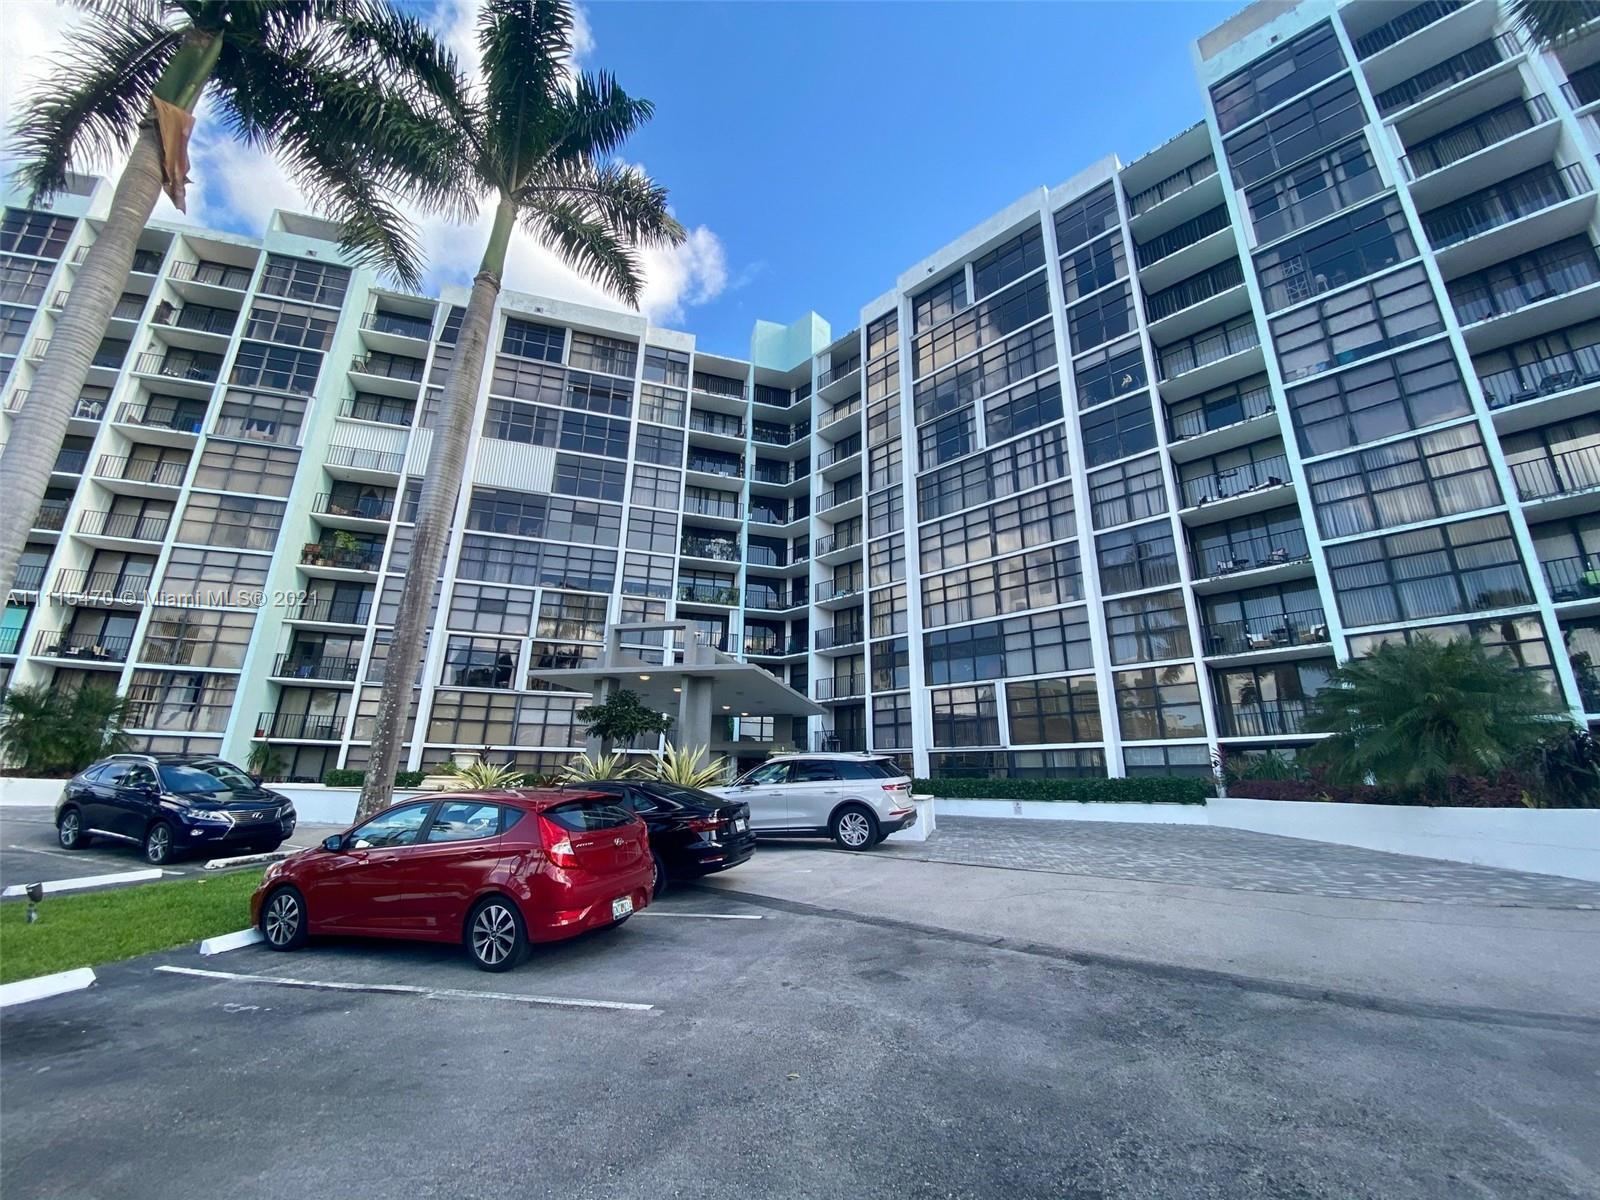 Beautiful 2/2 Condo Just a few minutes away from Hallandale Beach. This unit has lots of natural lig